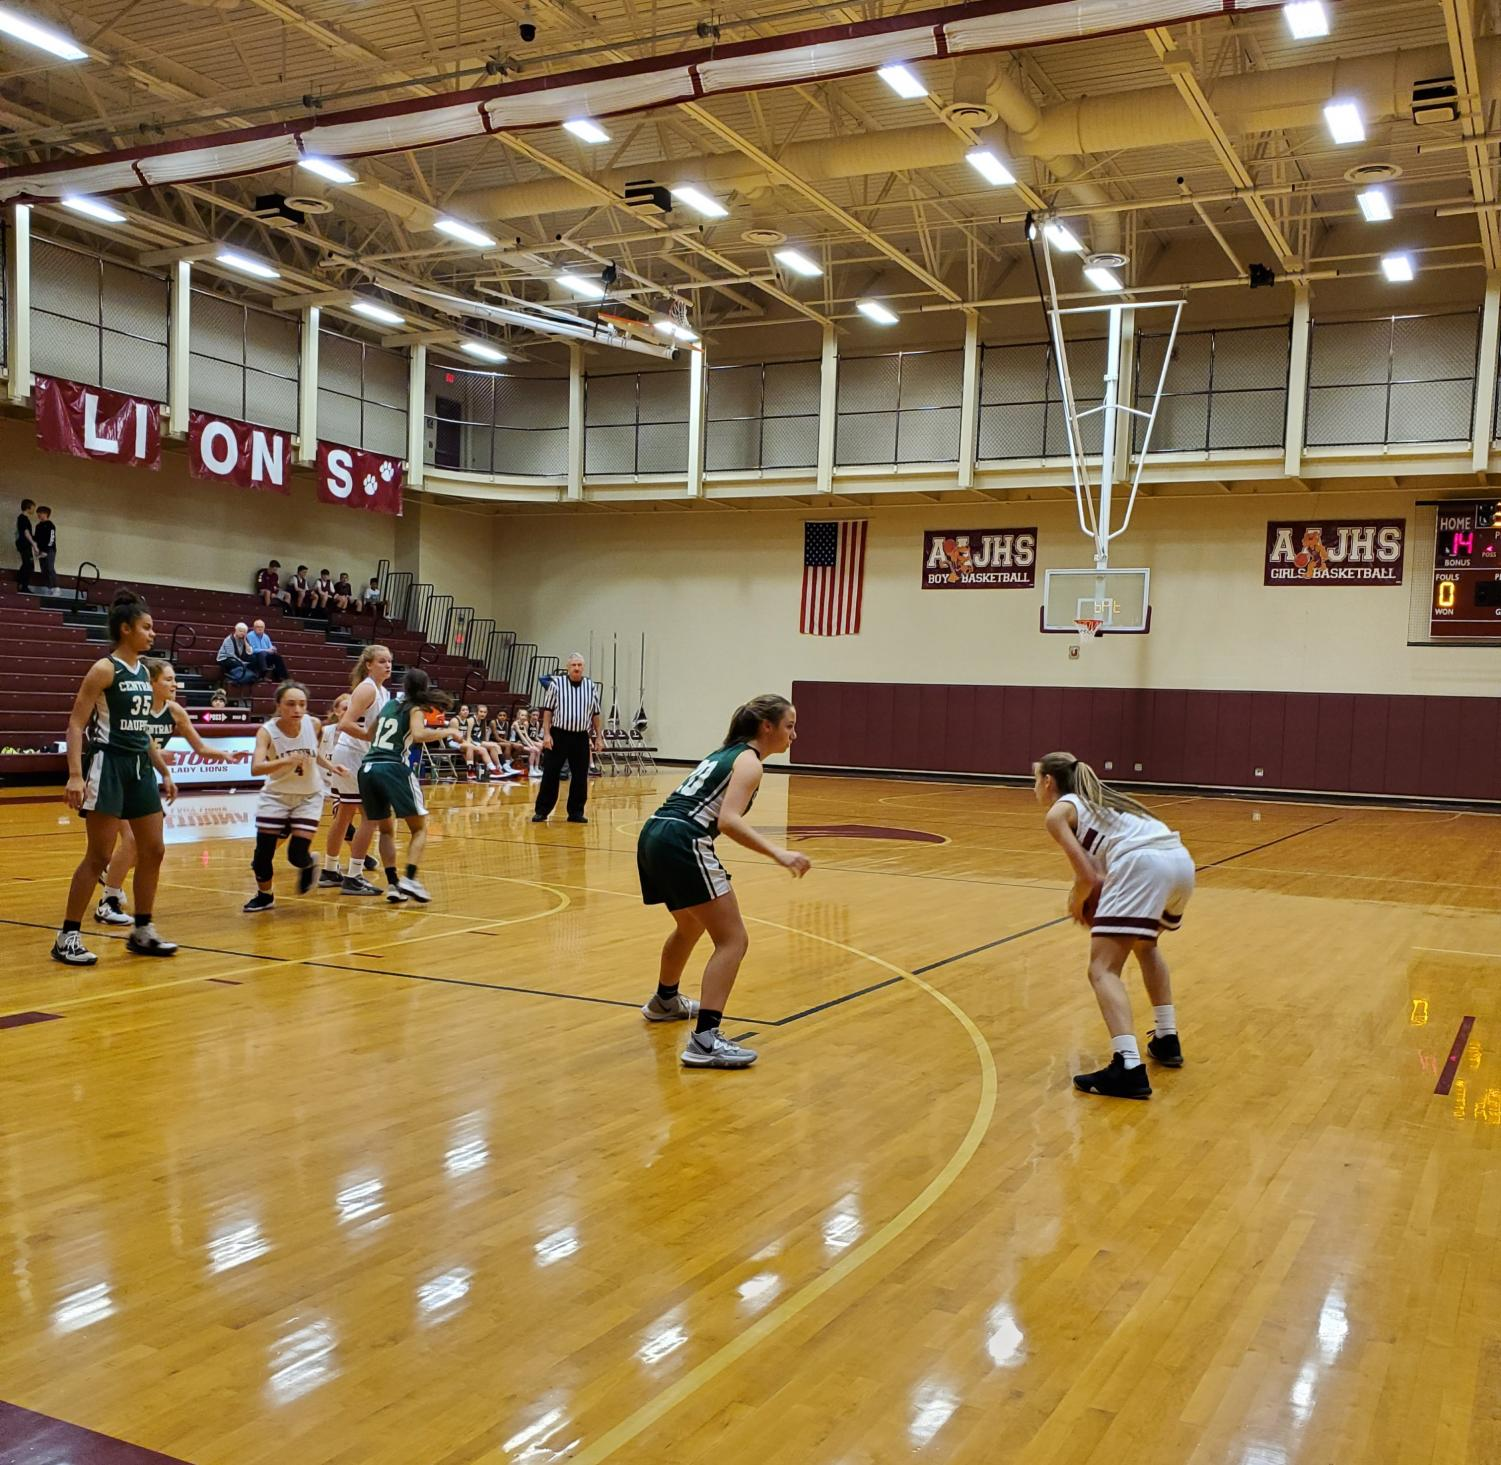 Shoot it! Eighth grader Kaylee Harpster plays offense in her basketball game on Dec. 16. The teams works together to beat their opponents.